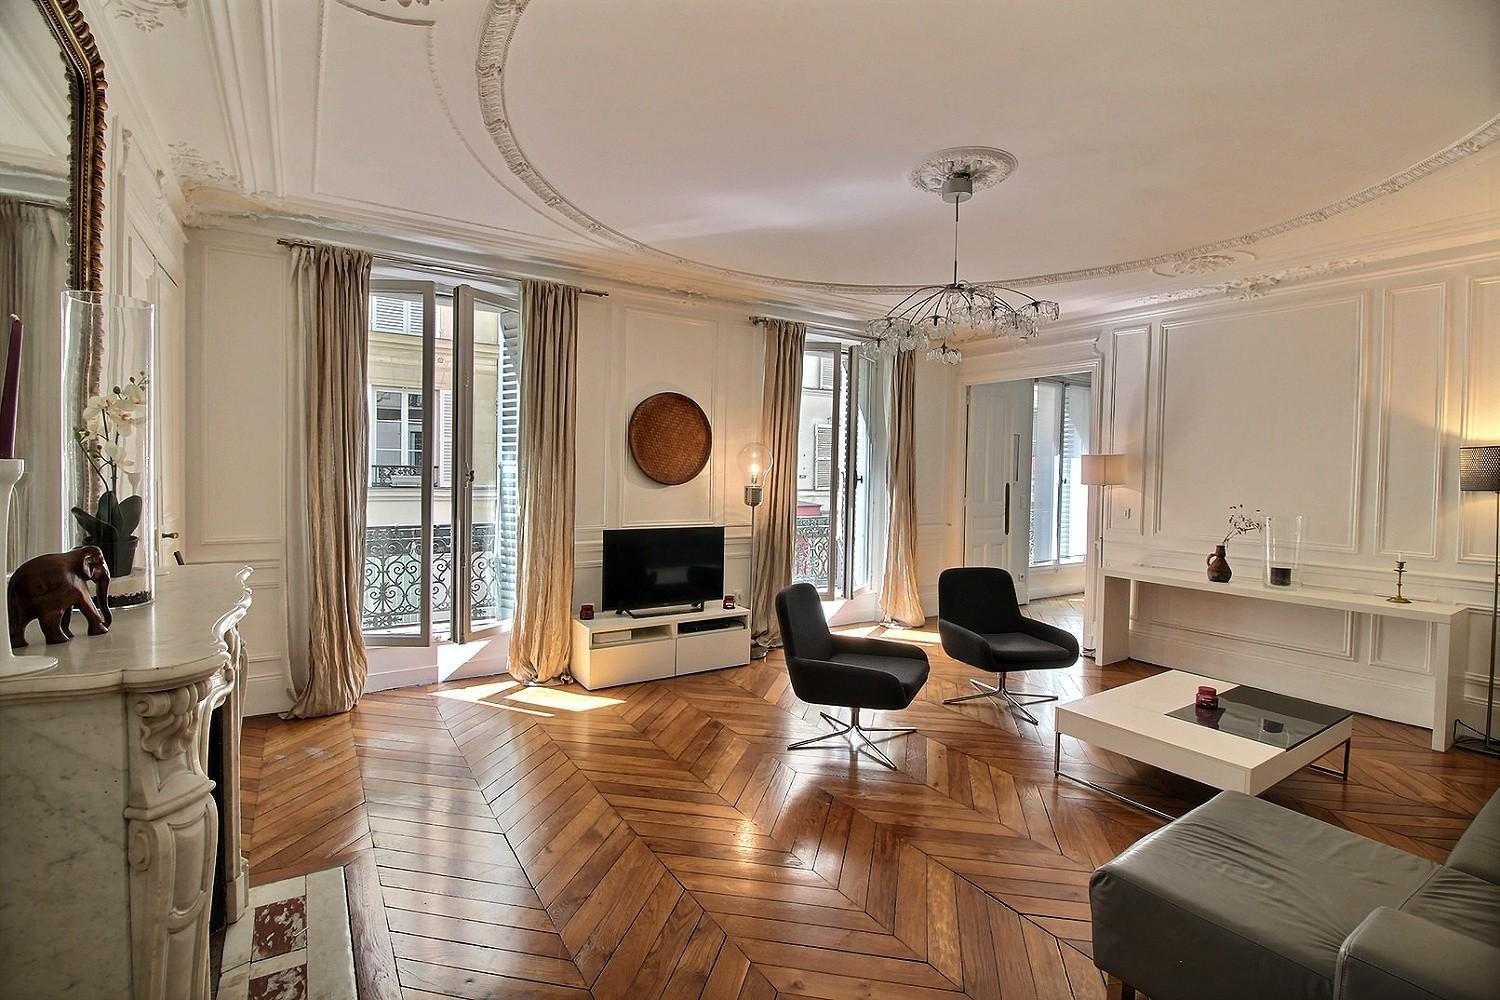 309397 - Opera 3-bedroom apartment paris